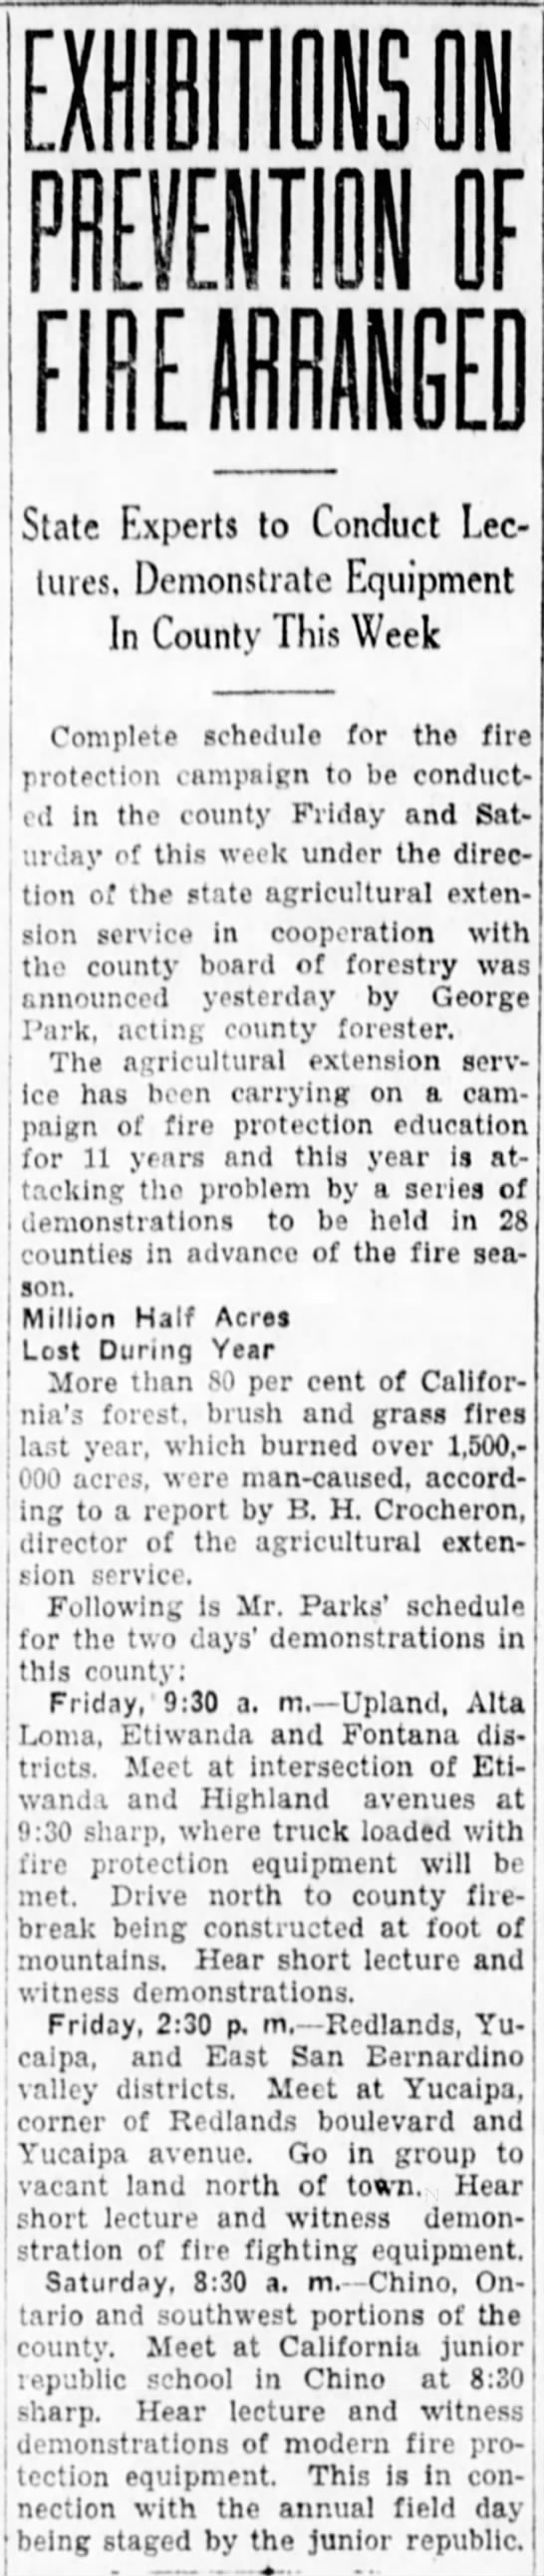 1929-4-24 Exhibitions on Prevention of Fire Arranged. -